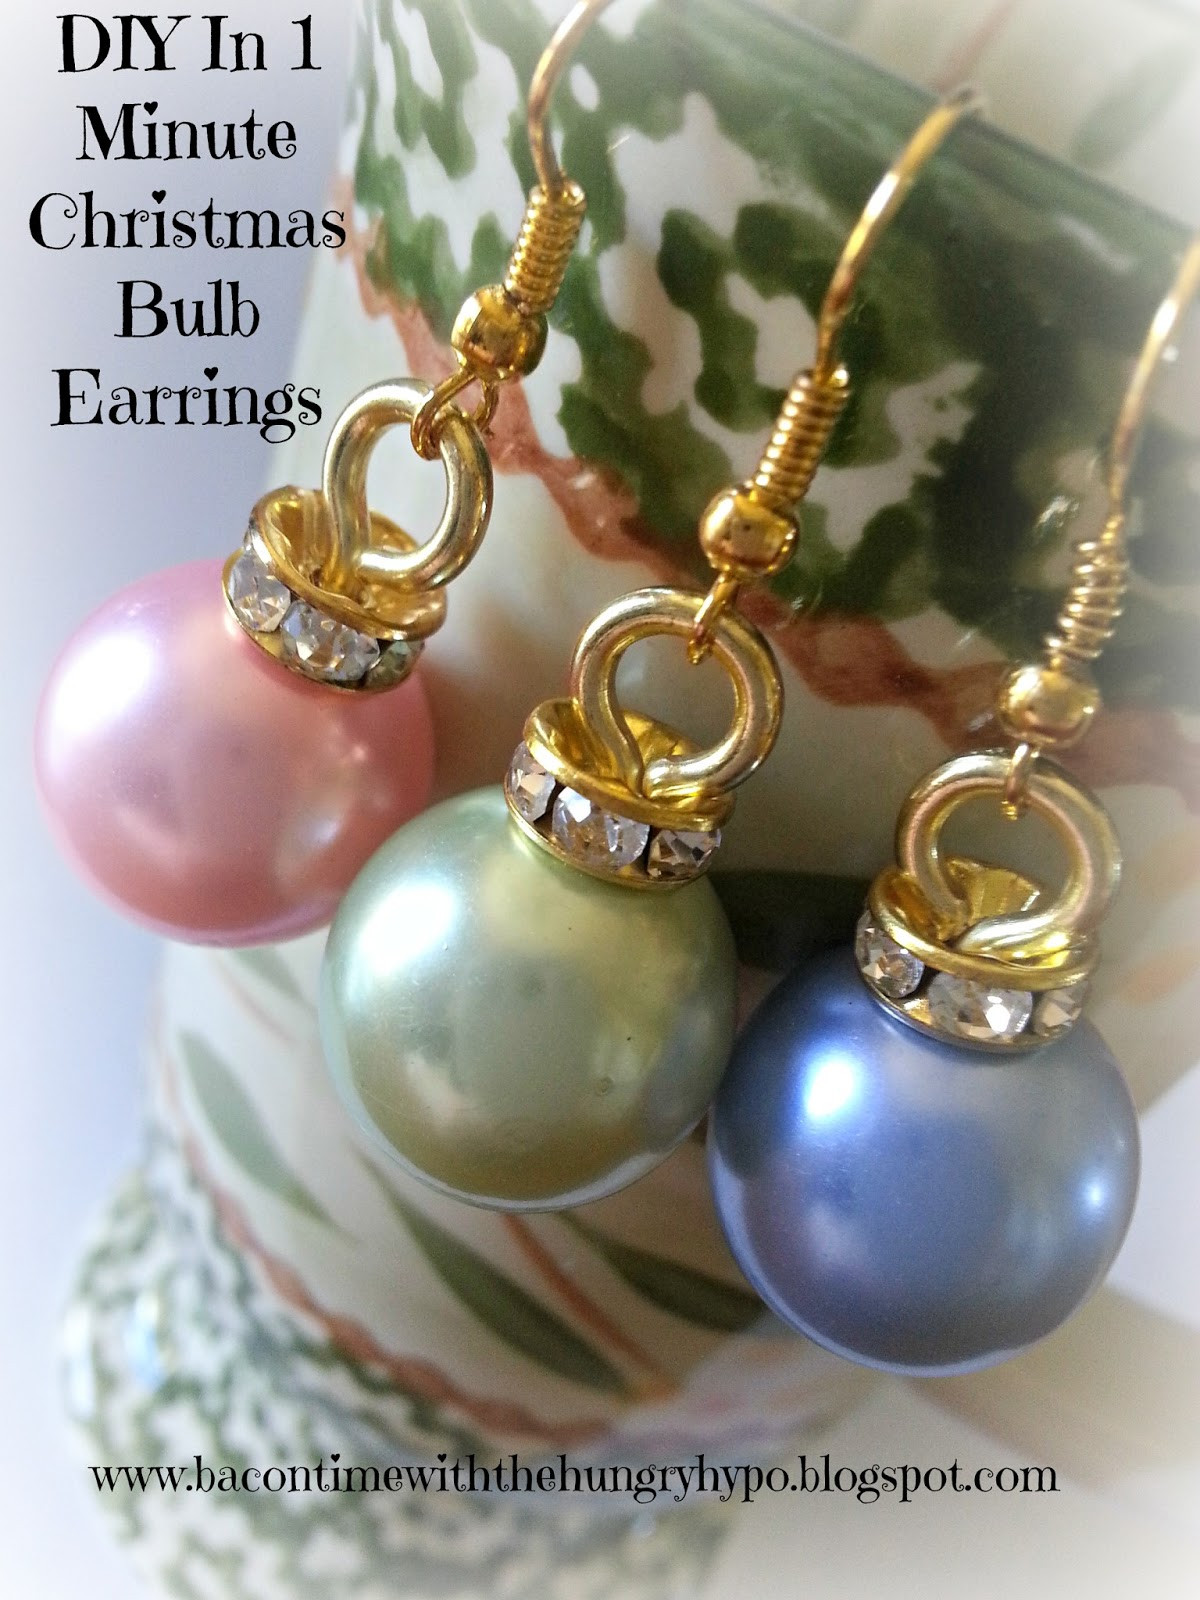 DIY Christmas Jewelry  Bacon Time With The Hungry Hypo DIY In 1 Minute Christmas